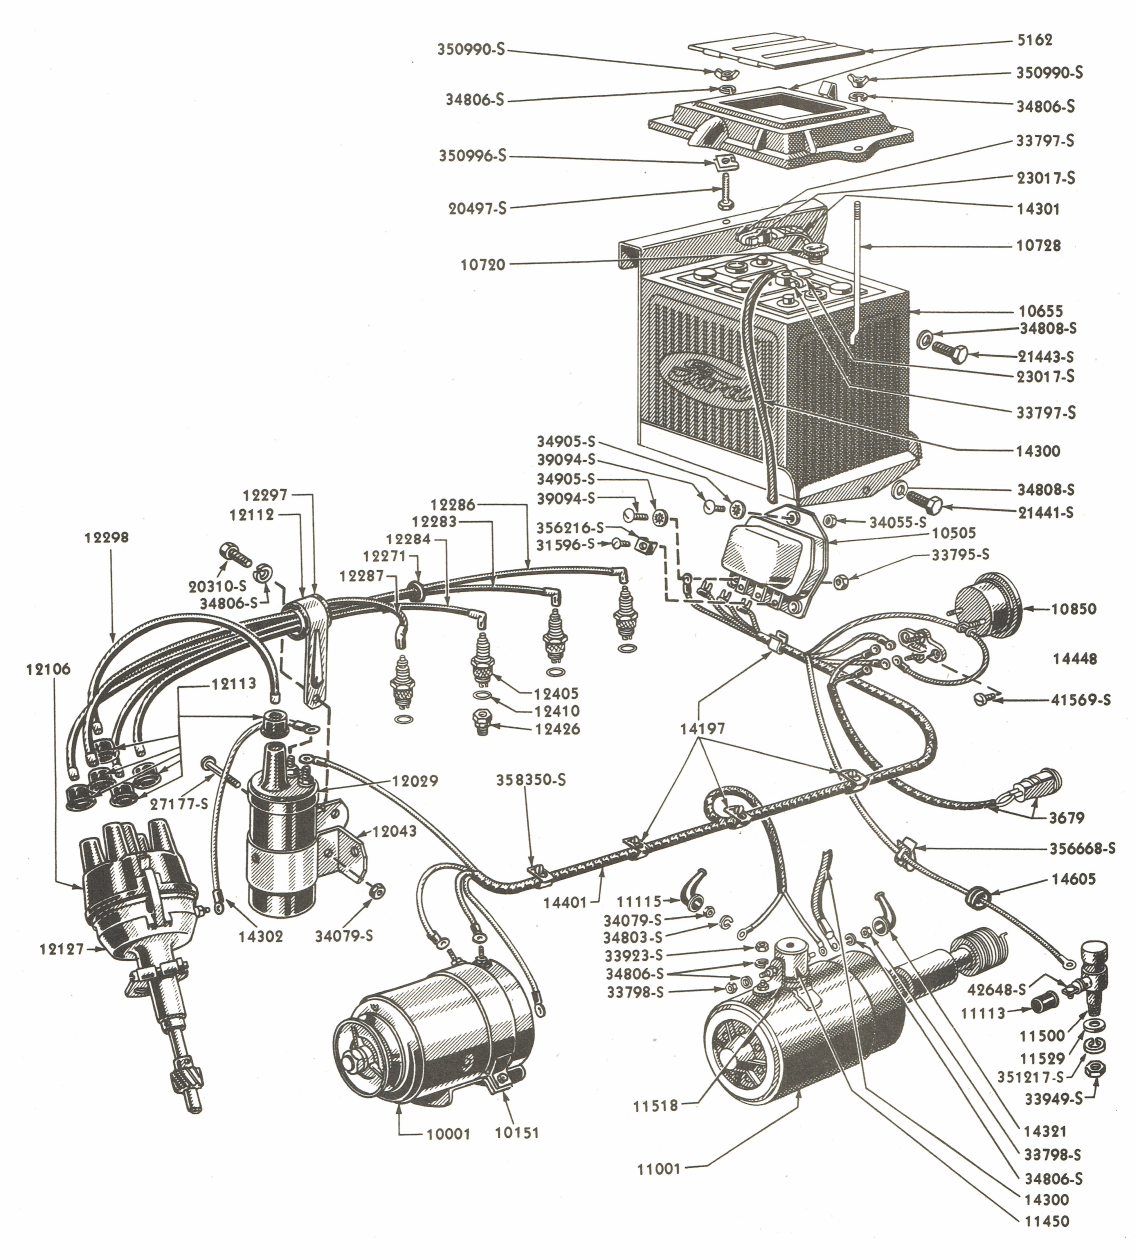 fs_6401] ford tractor wiring diagram on 601 ford wiring harness ...  ilari viewor mohammedshrine librar wiring 101